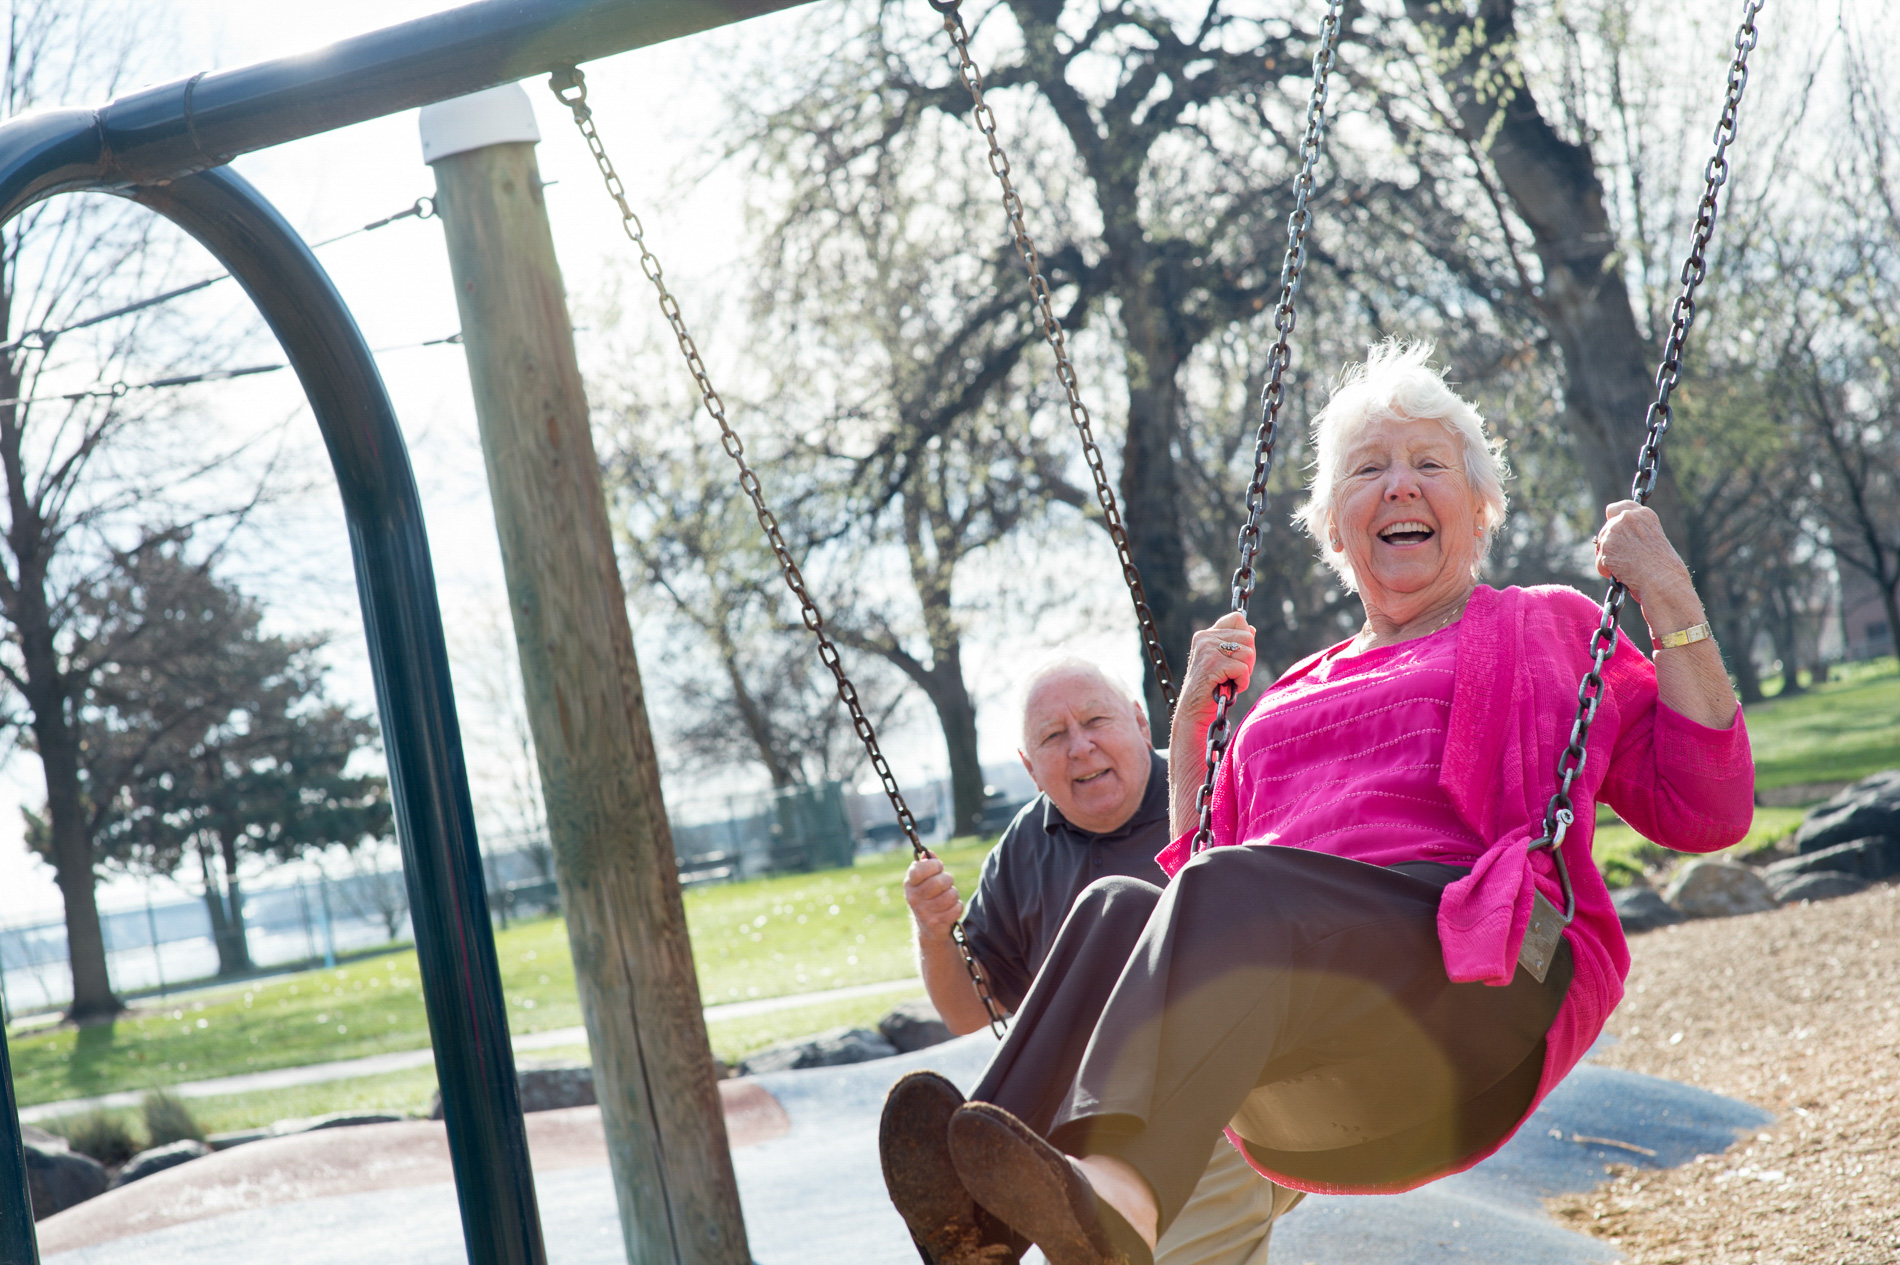 Never Too Old to Play at the Park